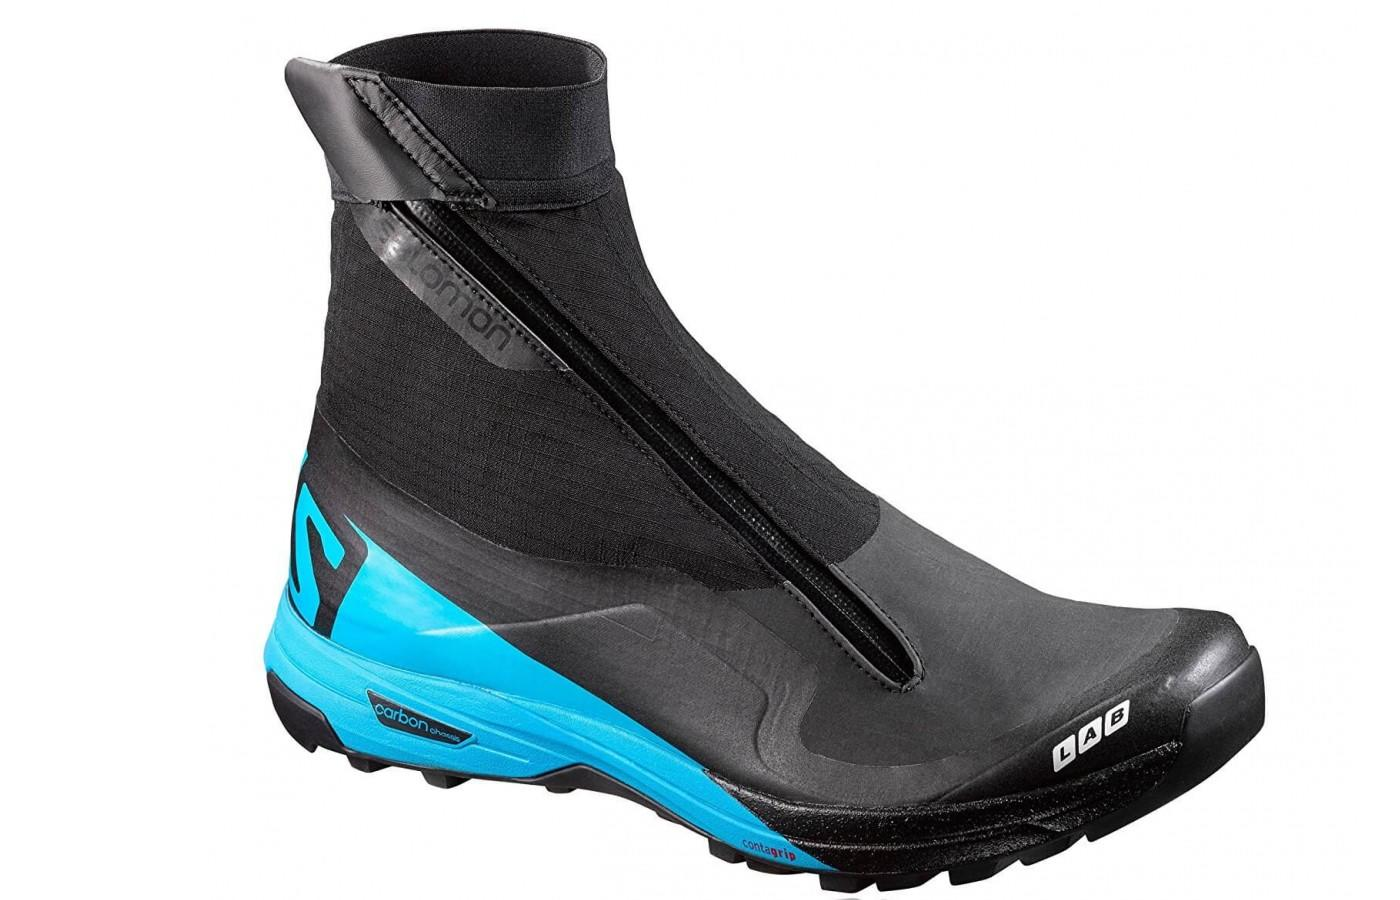 the Salomon S-Lab XA Alpine is a durable and tenacious trail gaiter